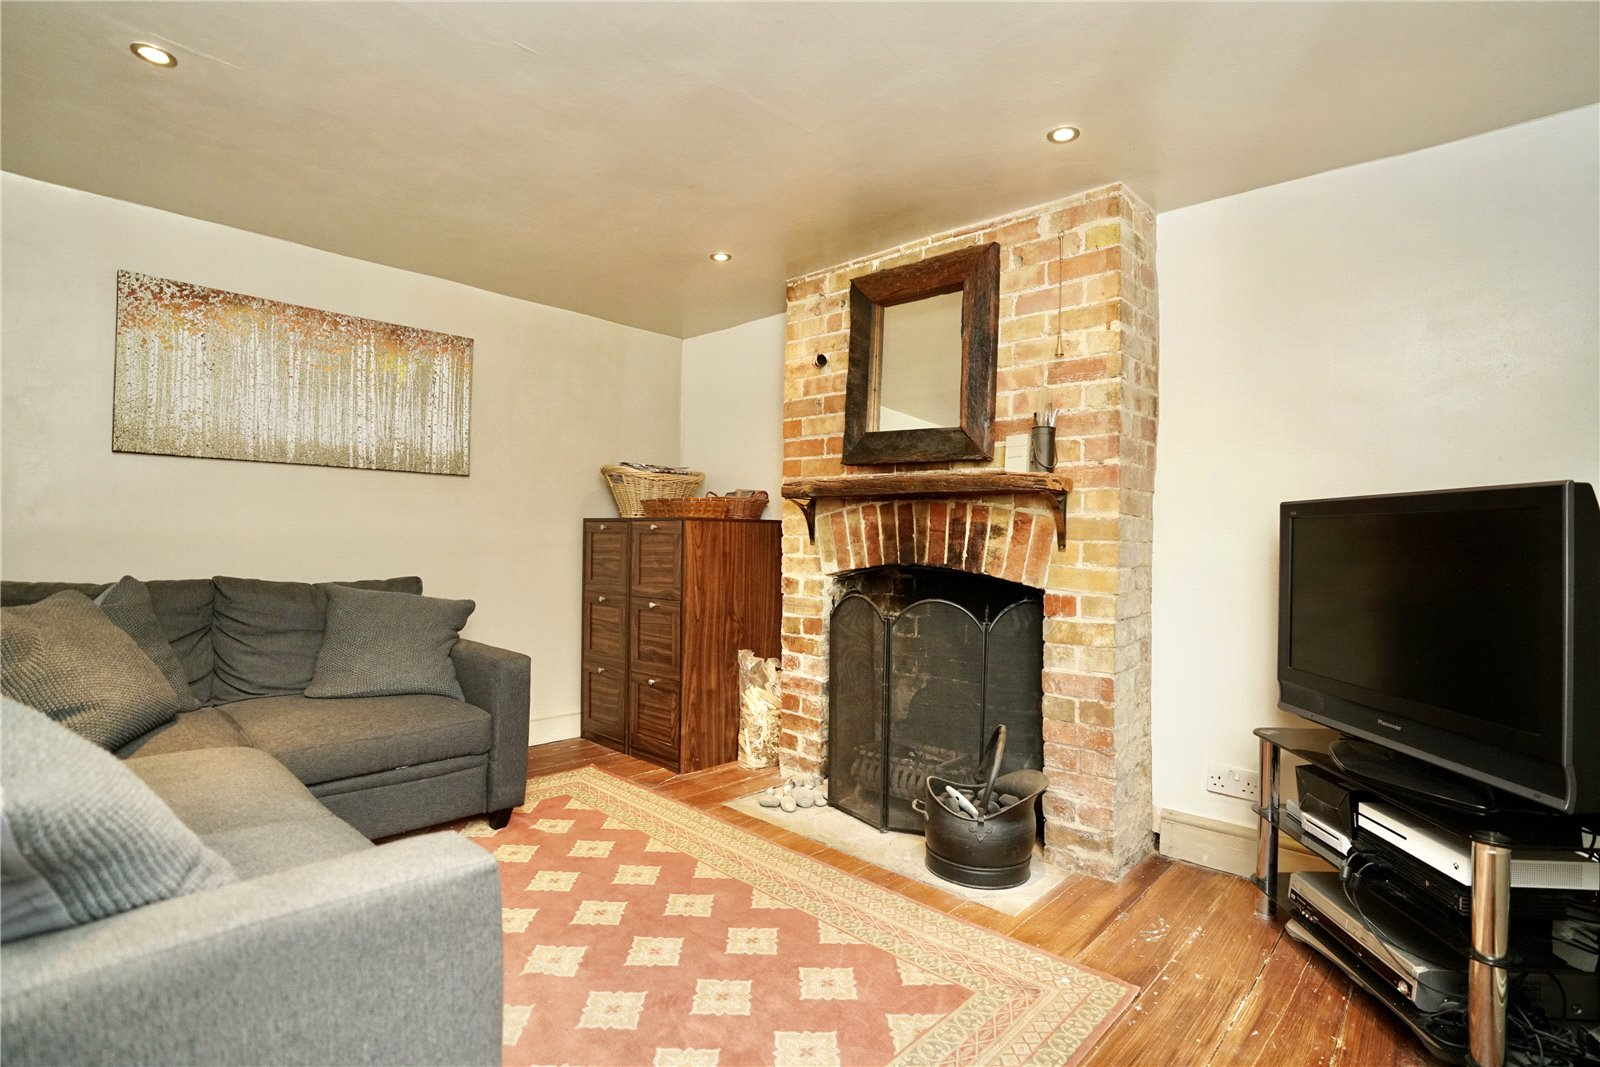 4 bed for sale in The Town, Great Staughton 5